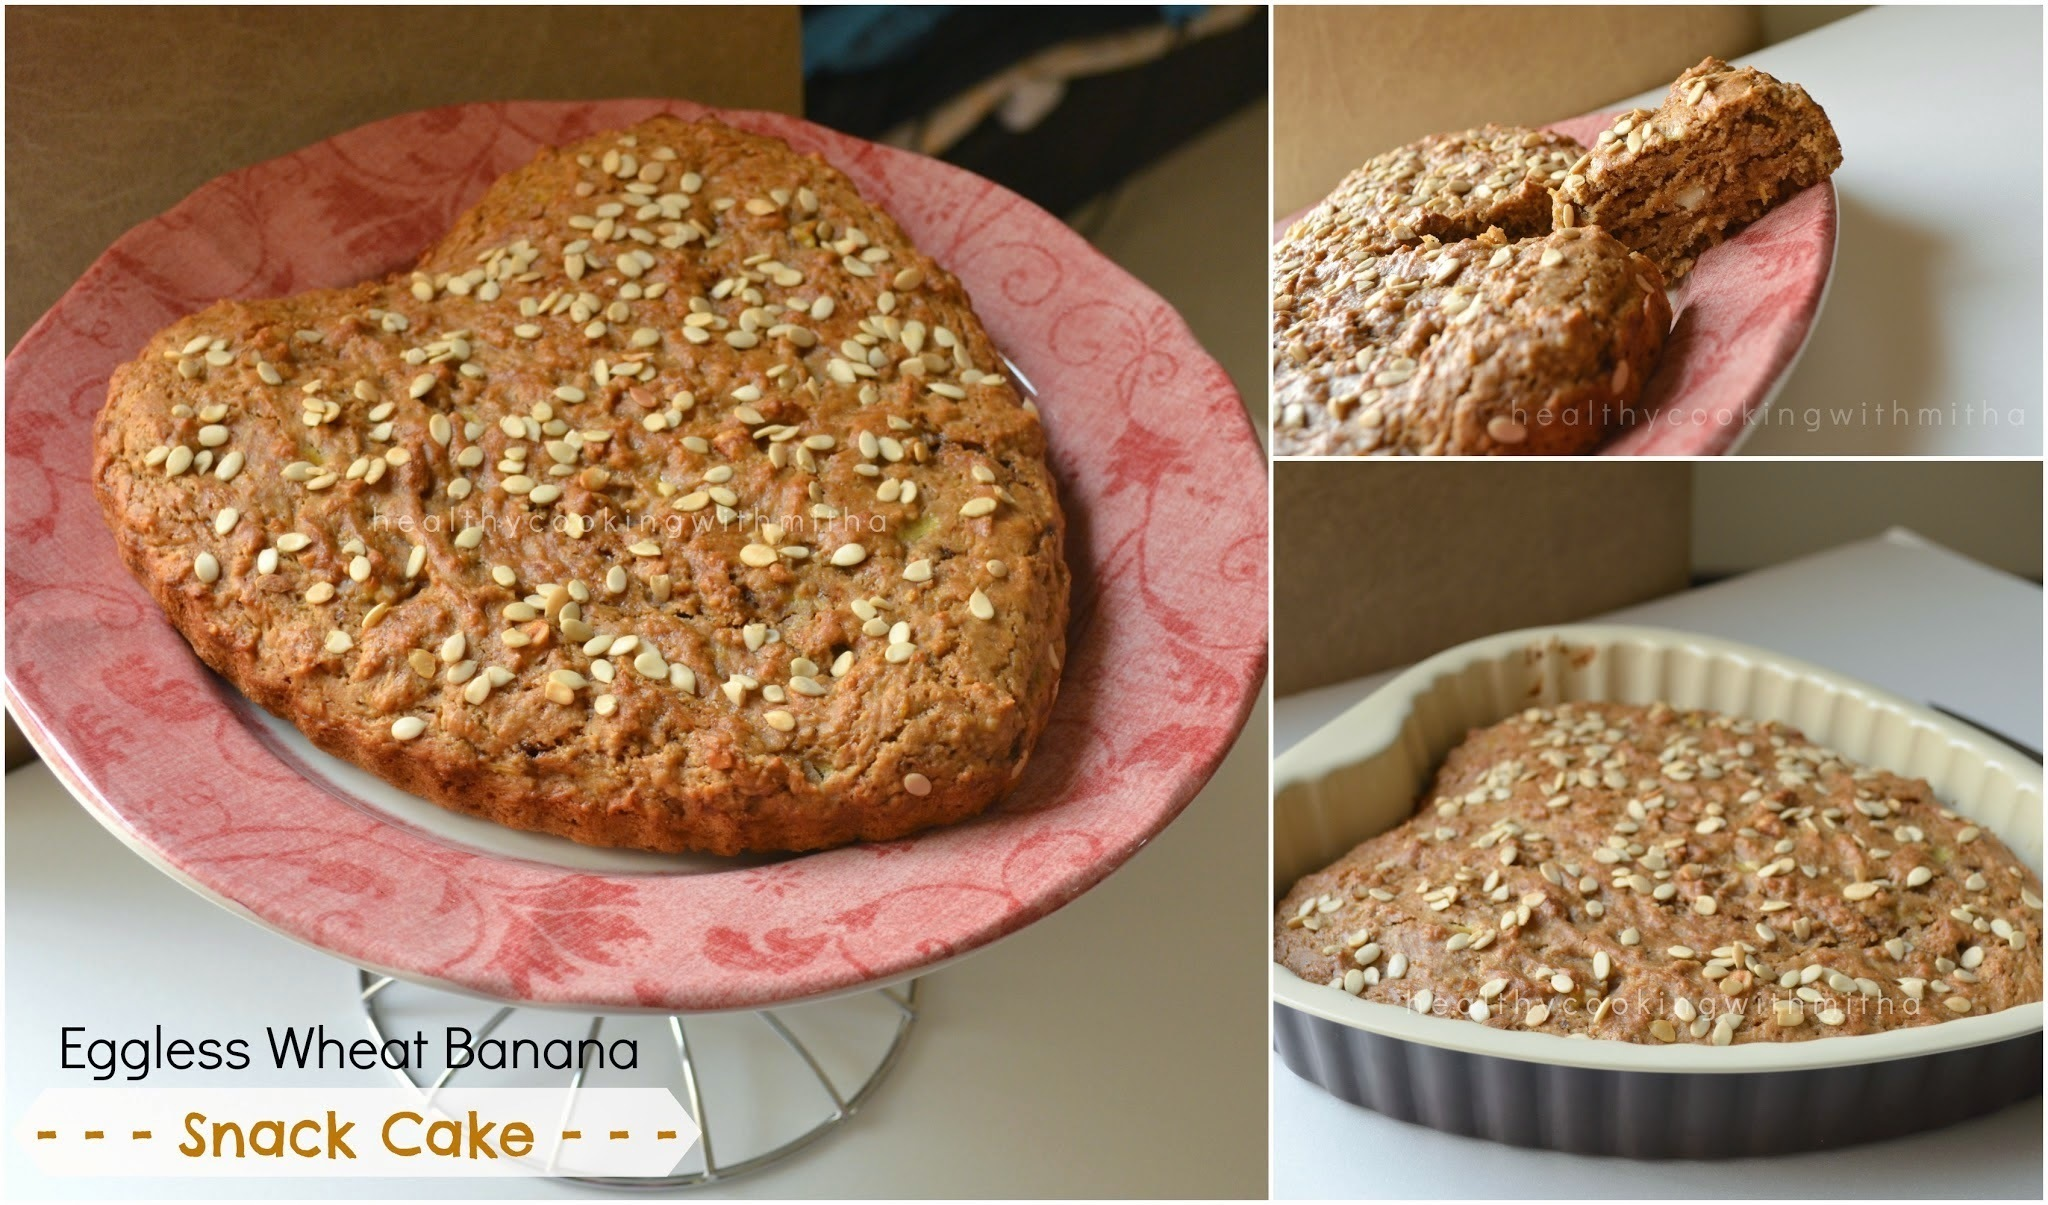 Eggless Wheat Banana Snack Cake | A Healthy & Delicious Bake